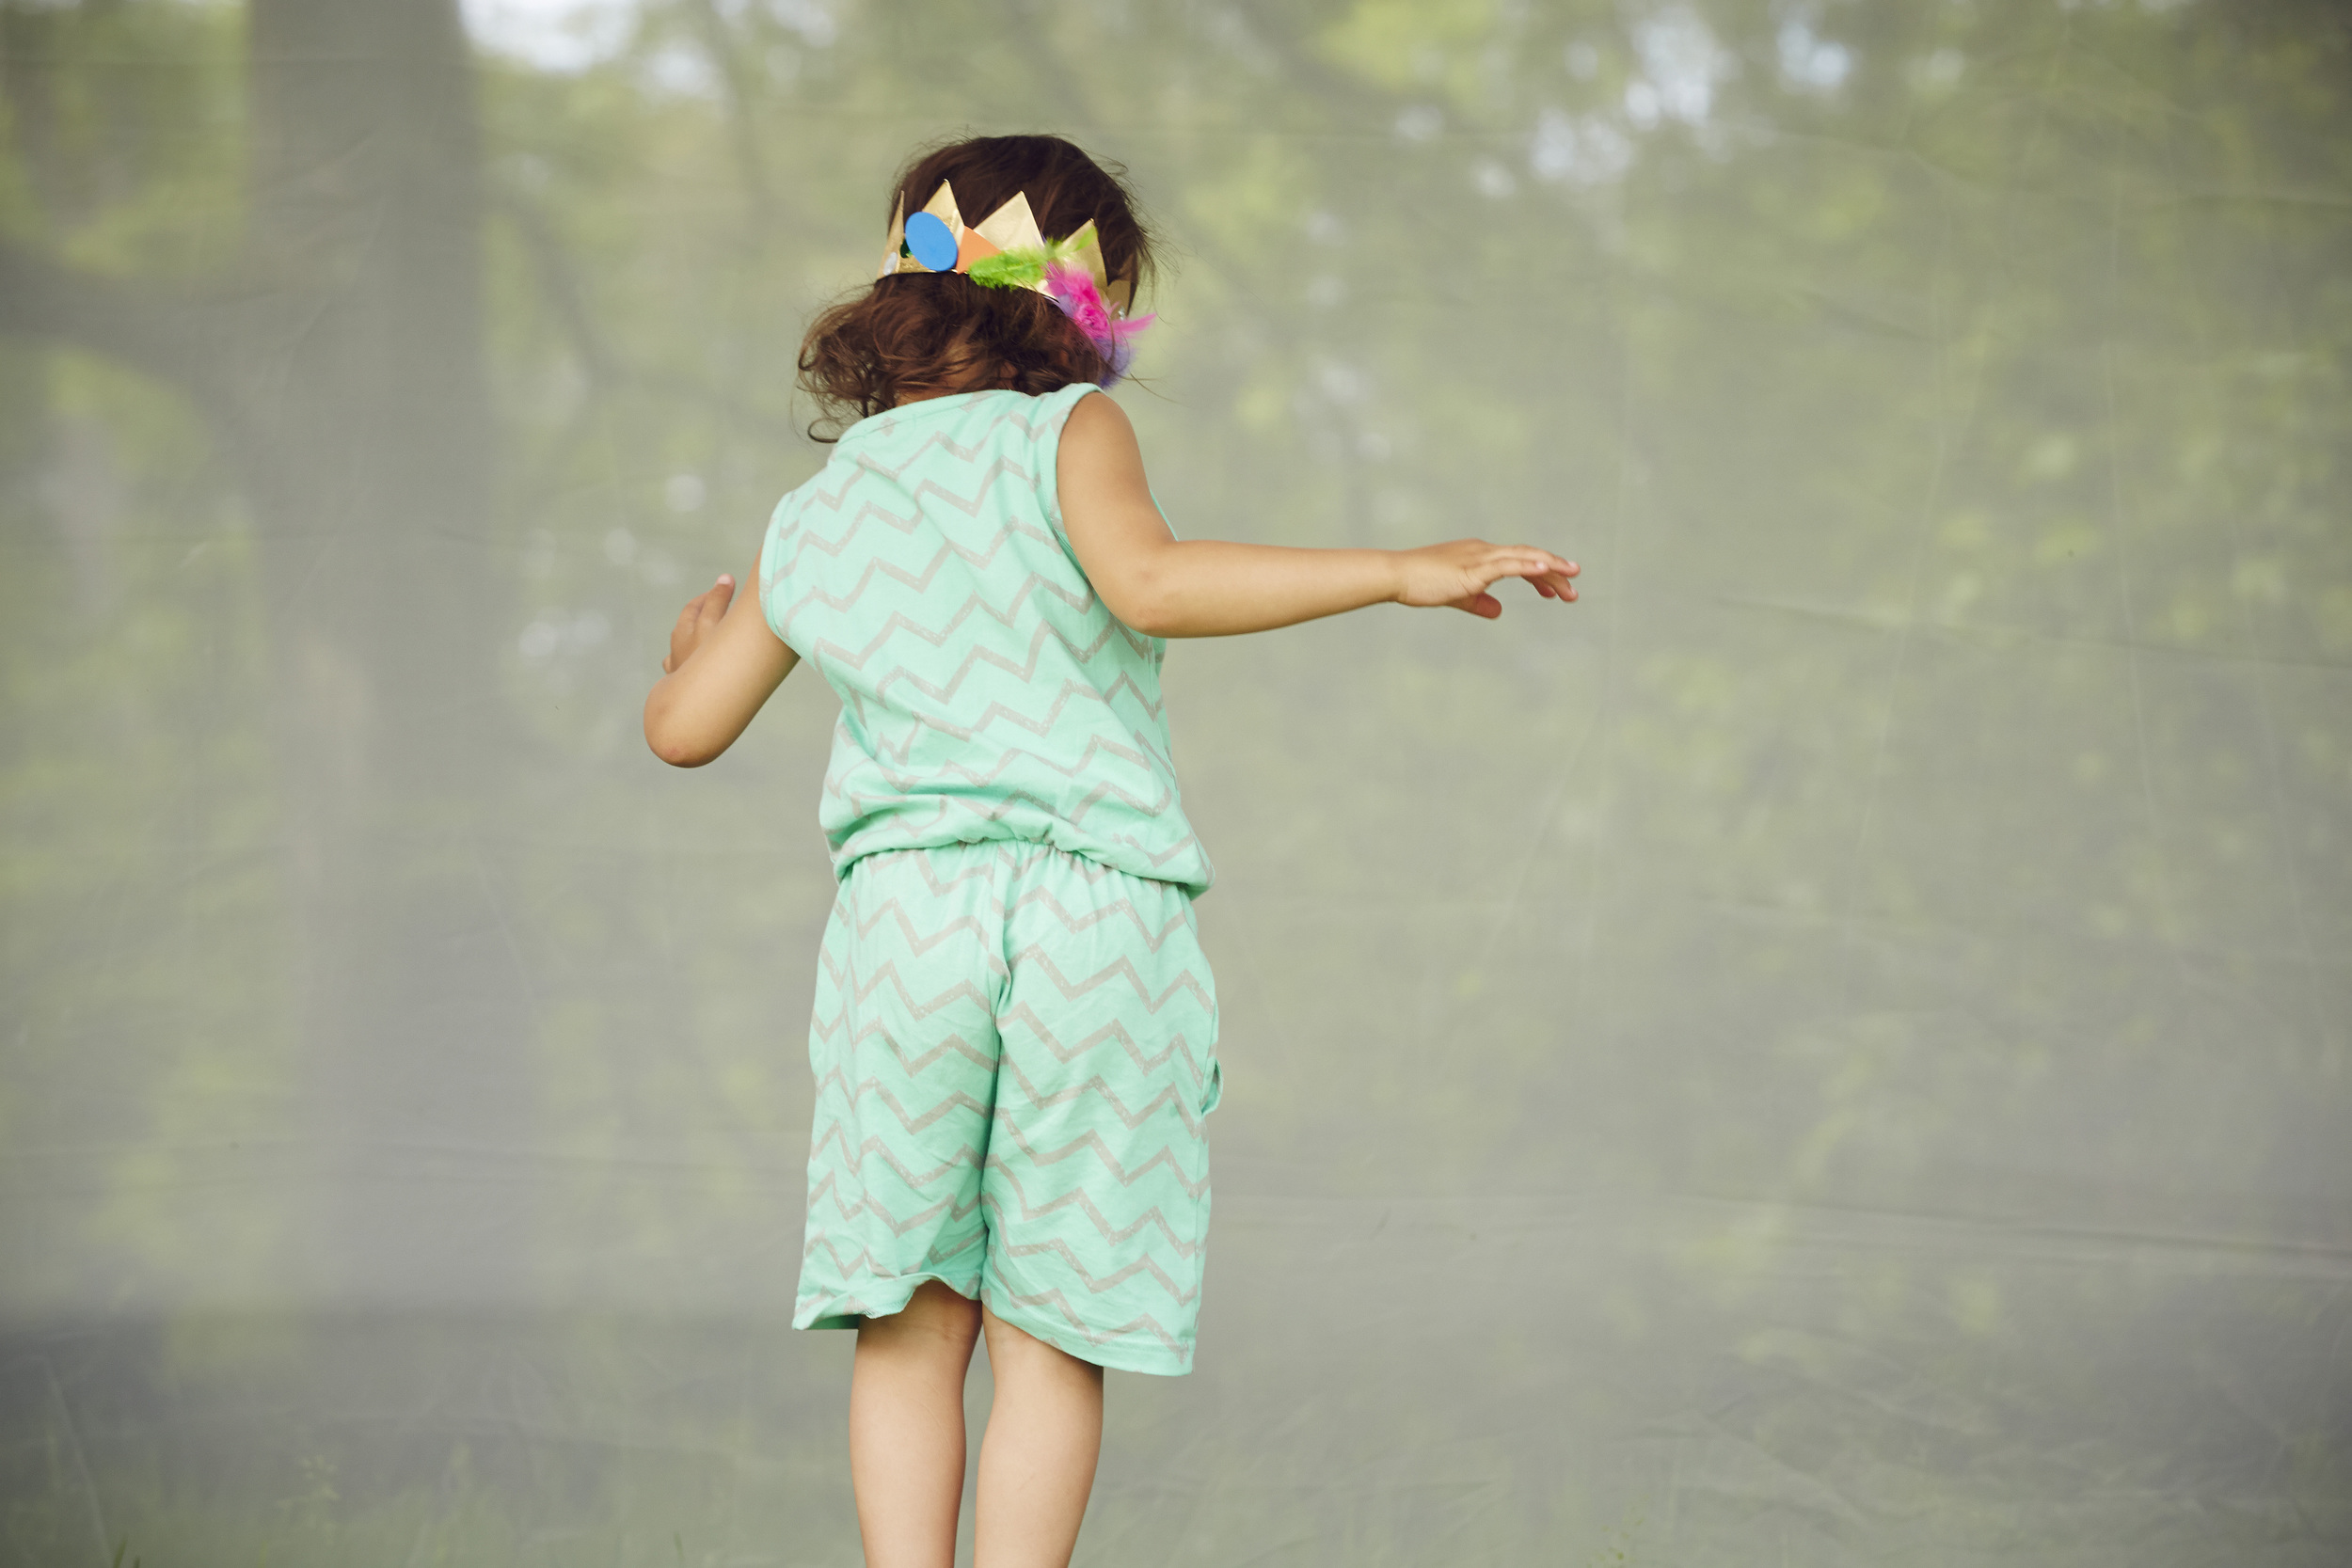 Indikidual childrens fun and quirky clothing